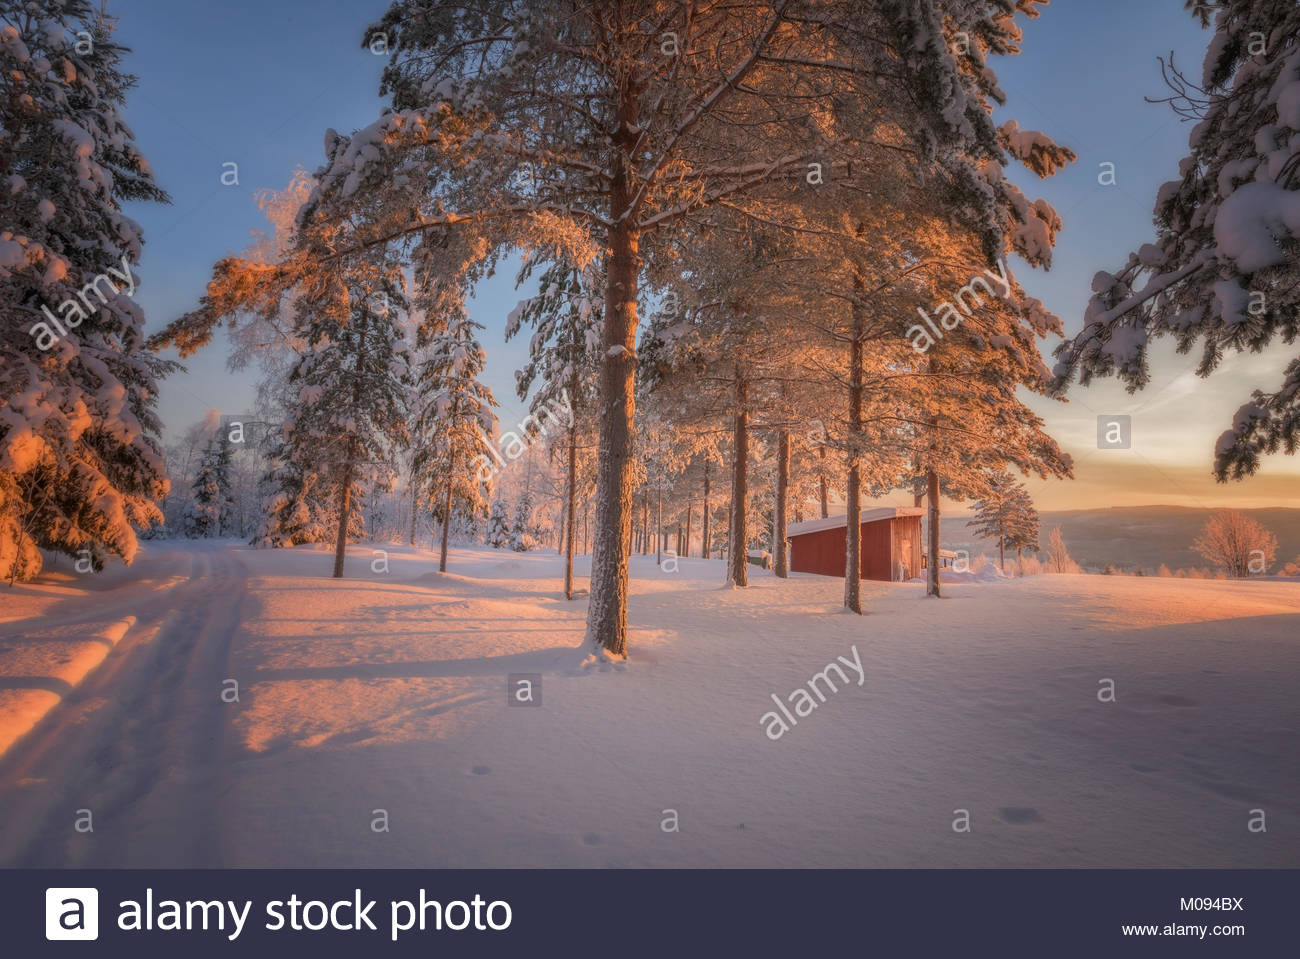 barrack in a winter forest landscape - Stock Image